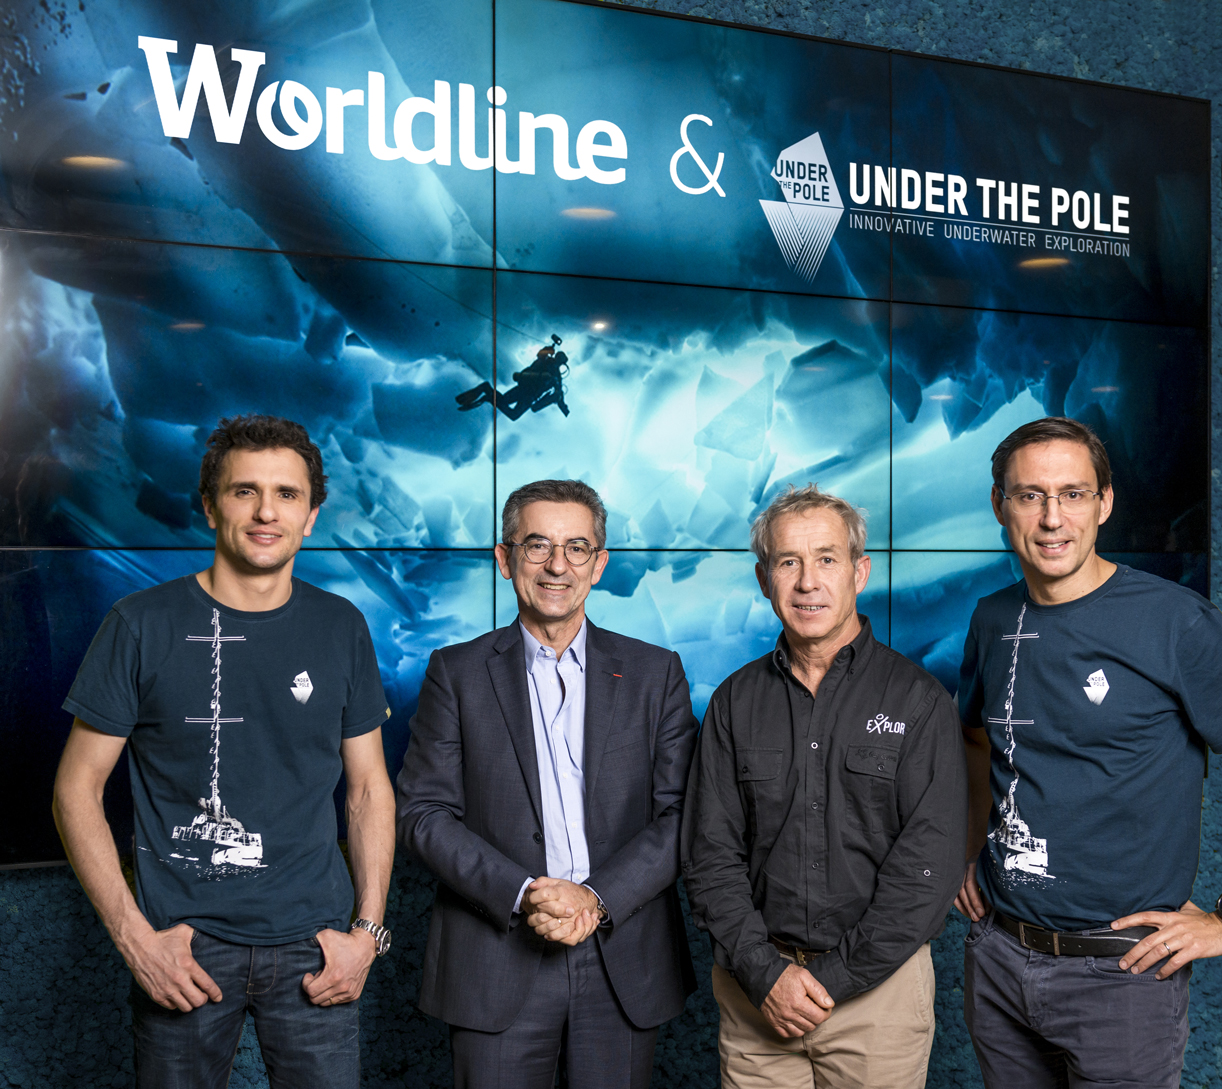 Photo de Ghislain Bardout (Under The Pole), Gilles Grapinet (Worldline), Roland Jourdain (Explore), Sébastien Mandront (Worldline)